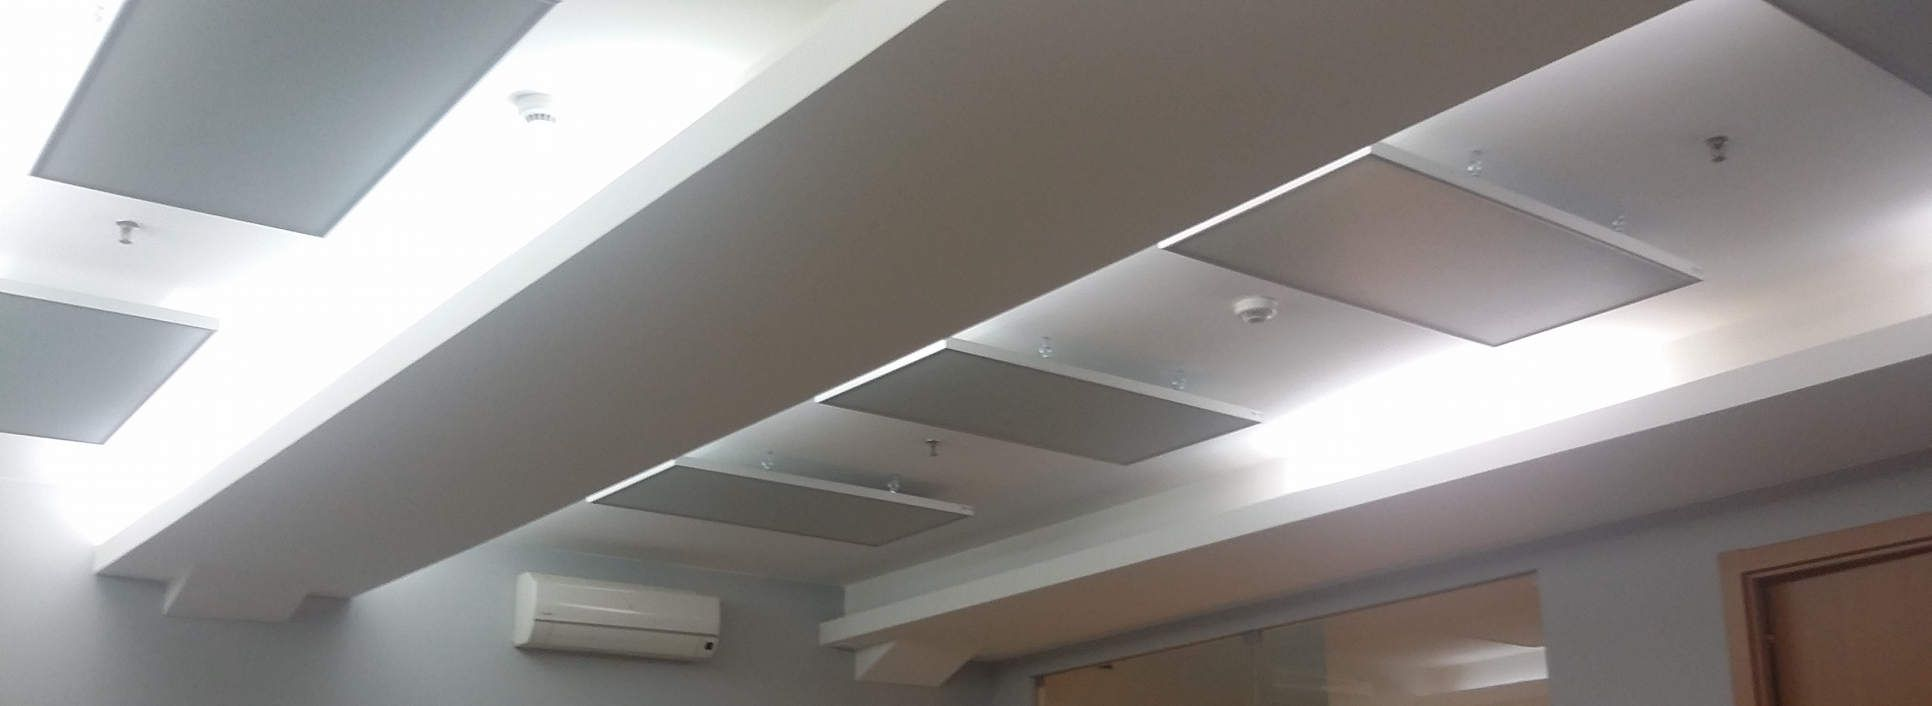 Glas Infrarotheizung Mit Led Beleuchtung Infrarotheizung Led Beleuchtung Beleuchtung